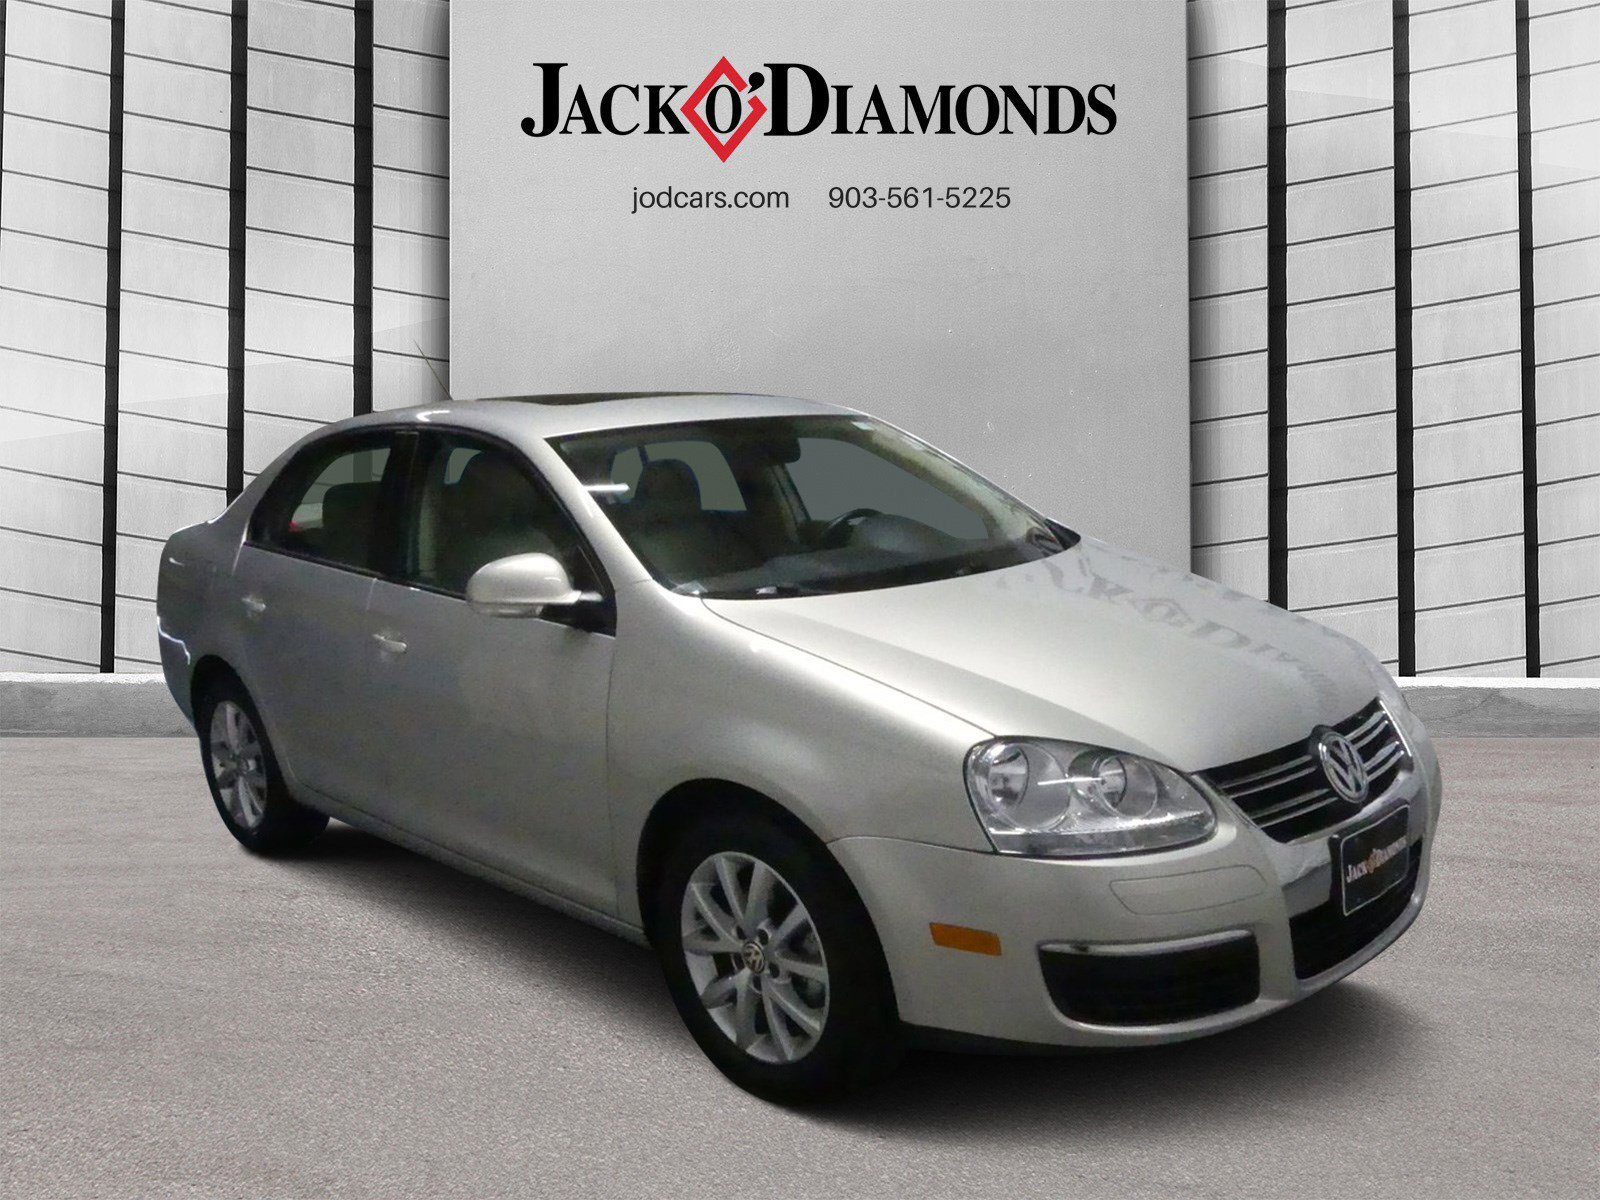 Pre-Owned 2010 Volkswagen Jetta Sedan SEL